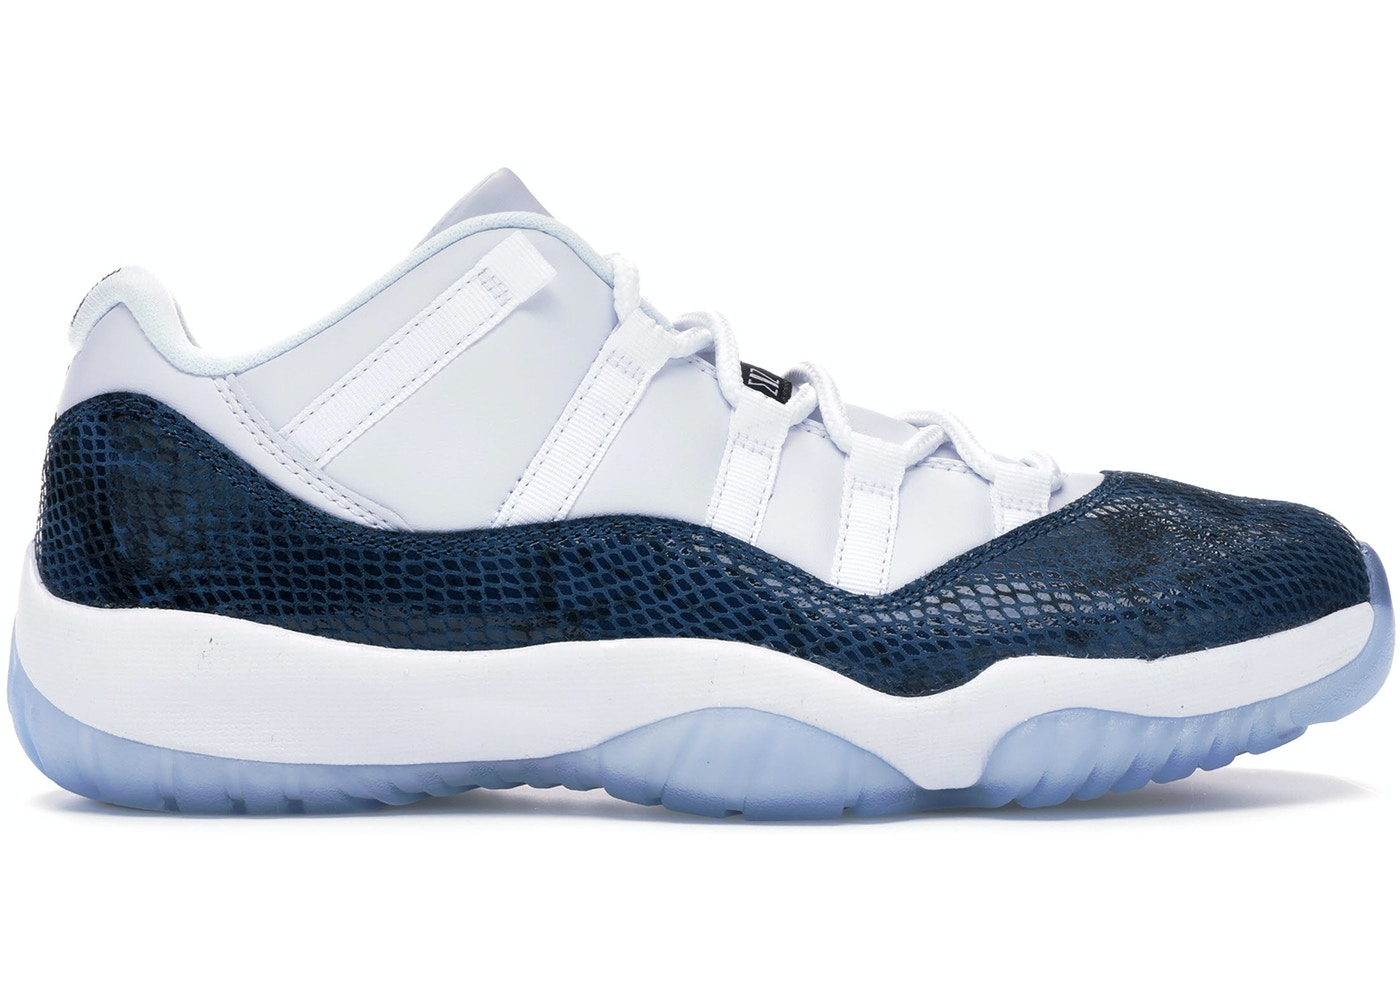 58b18e30e3edf Jordan 11 Retro Low Snake Navy (2019) - CD6846-102